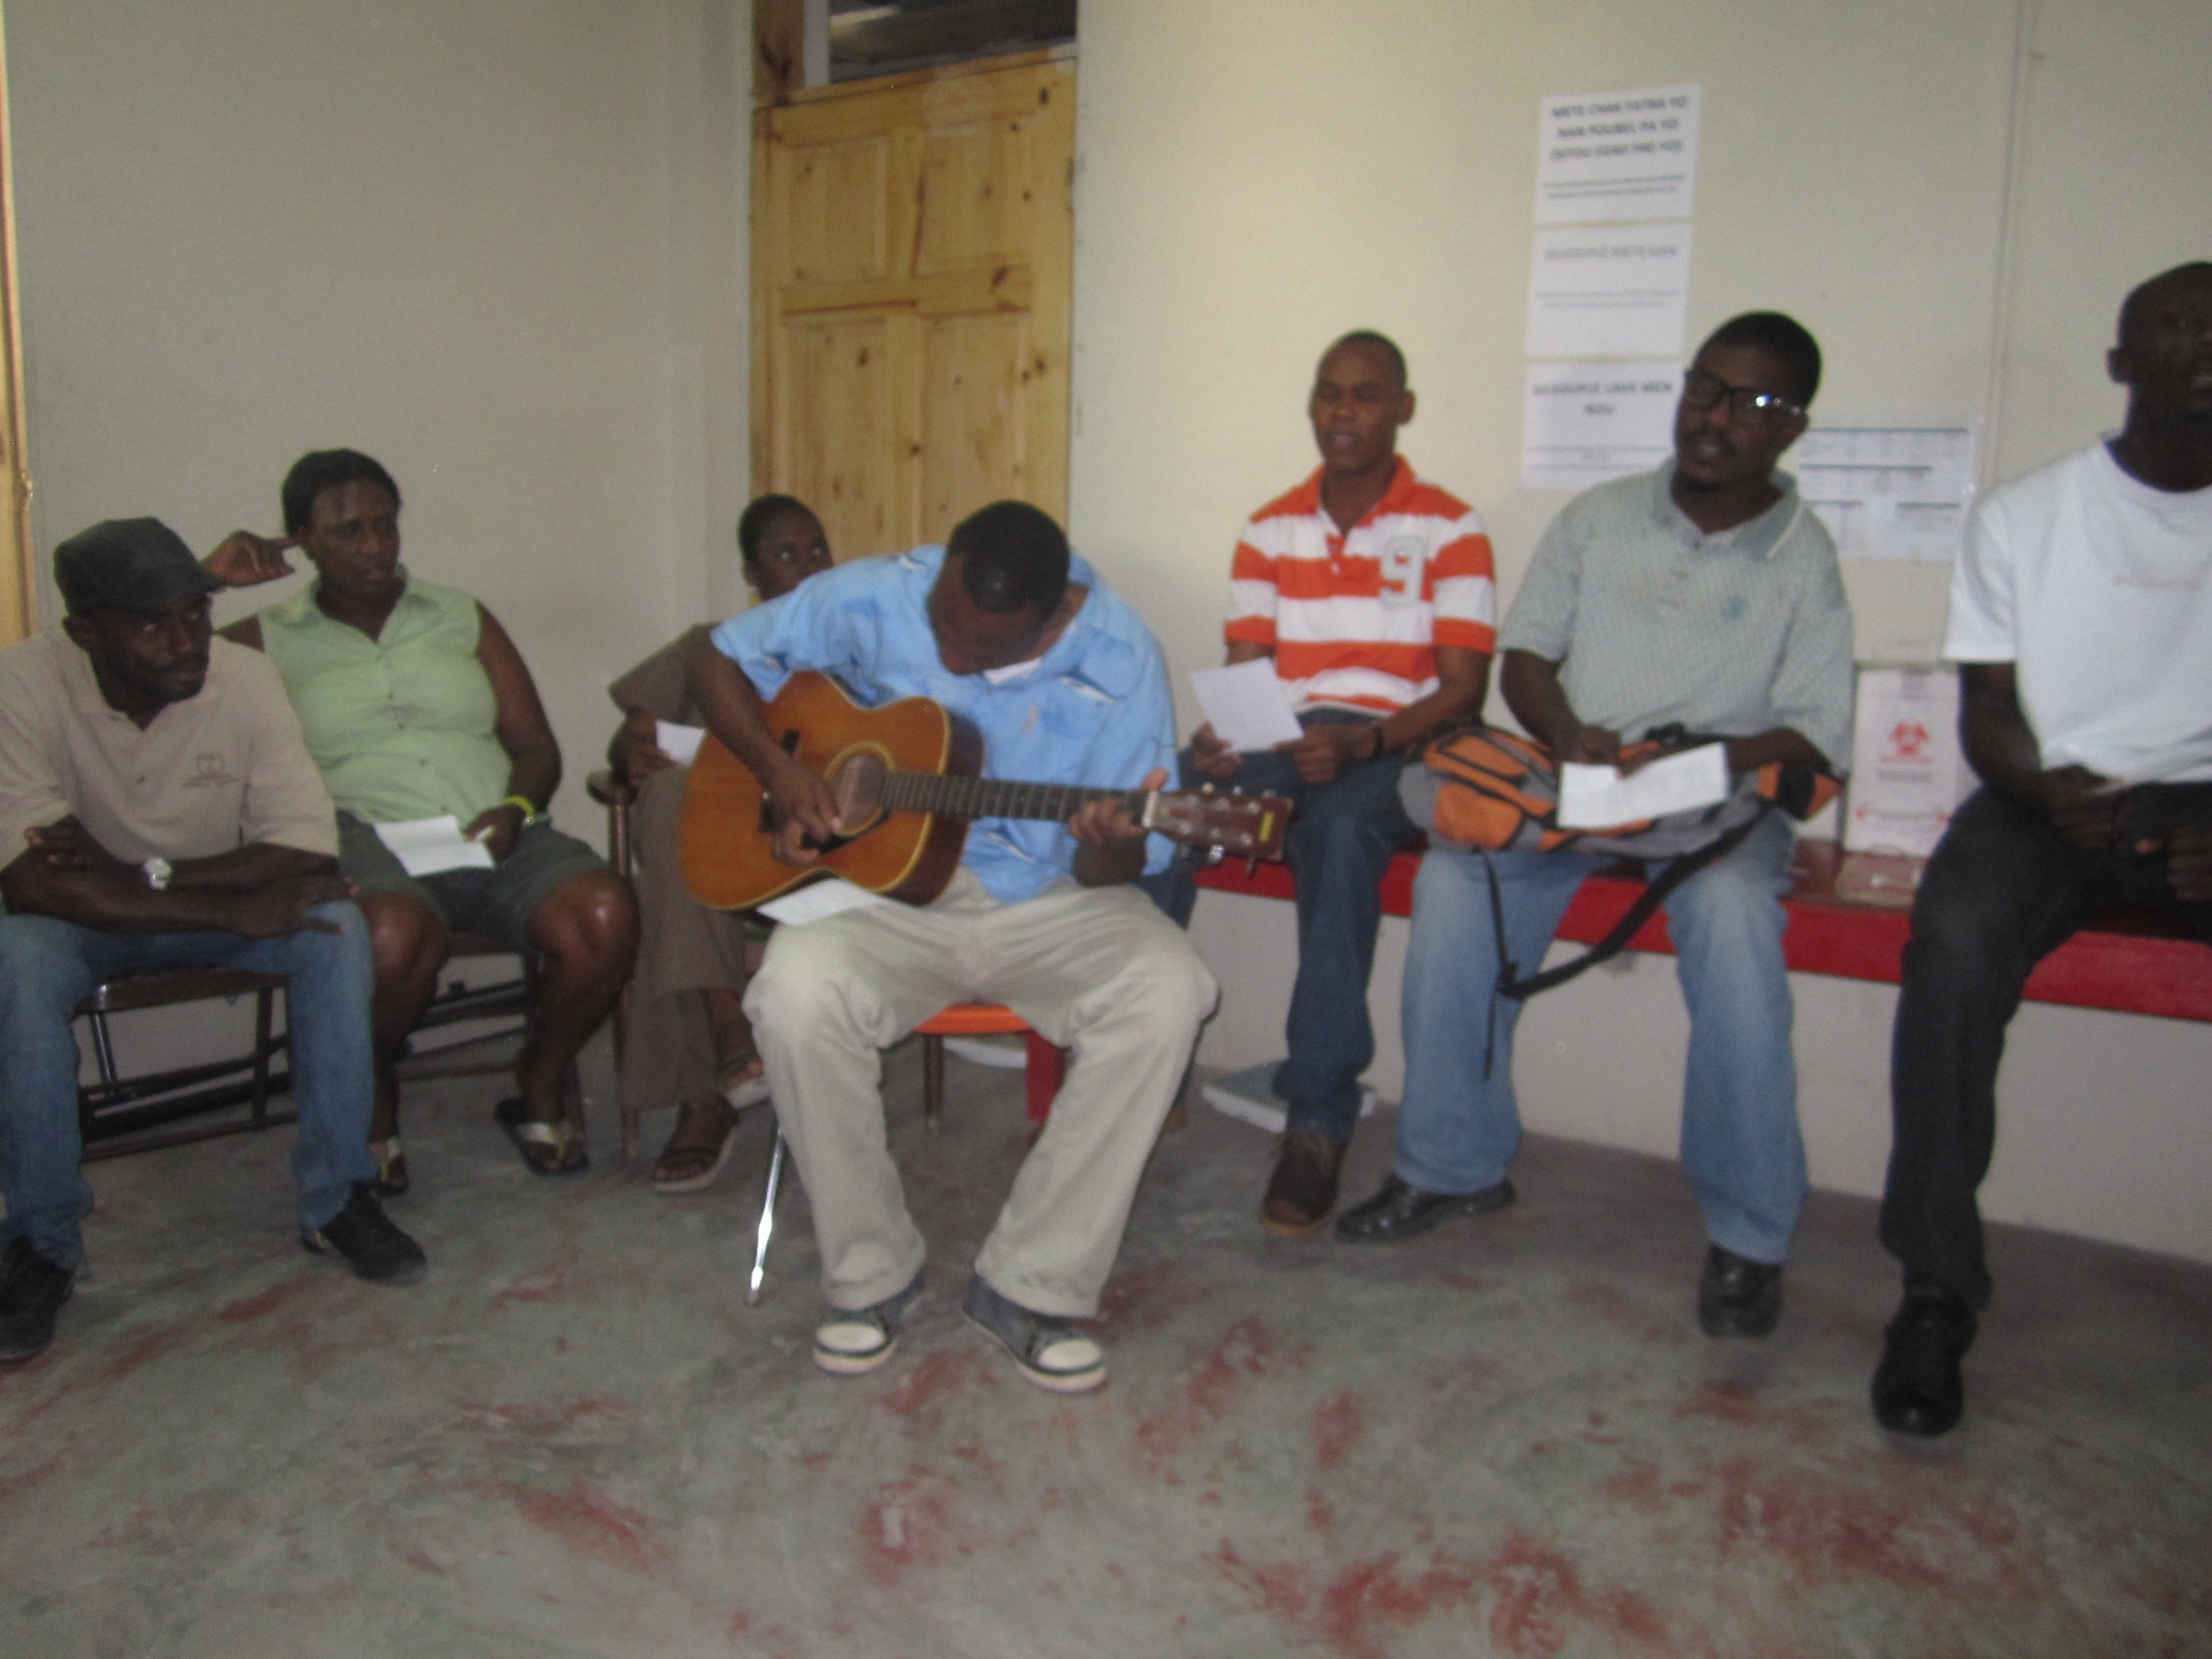 Devotions with the clinic staff